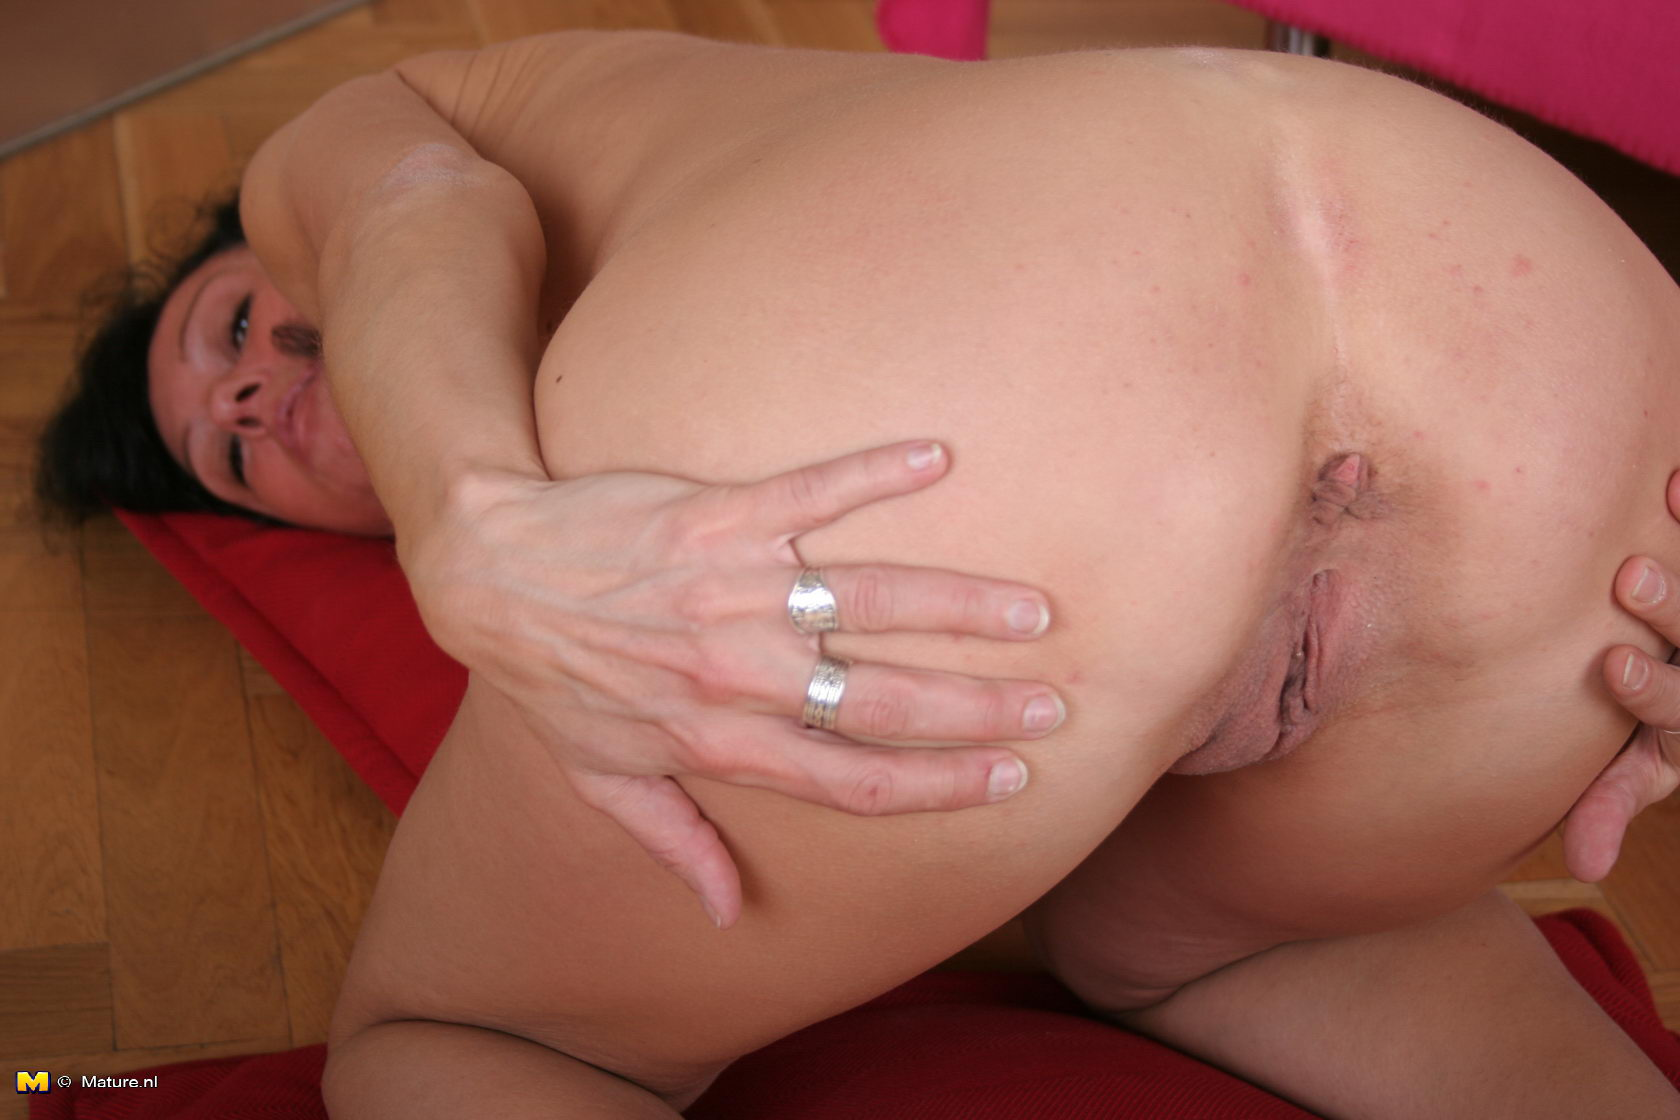 Have lotsa pics Video Of Homemade Sex plus for you, have